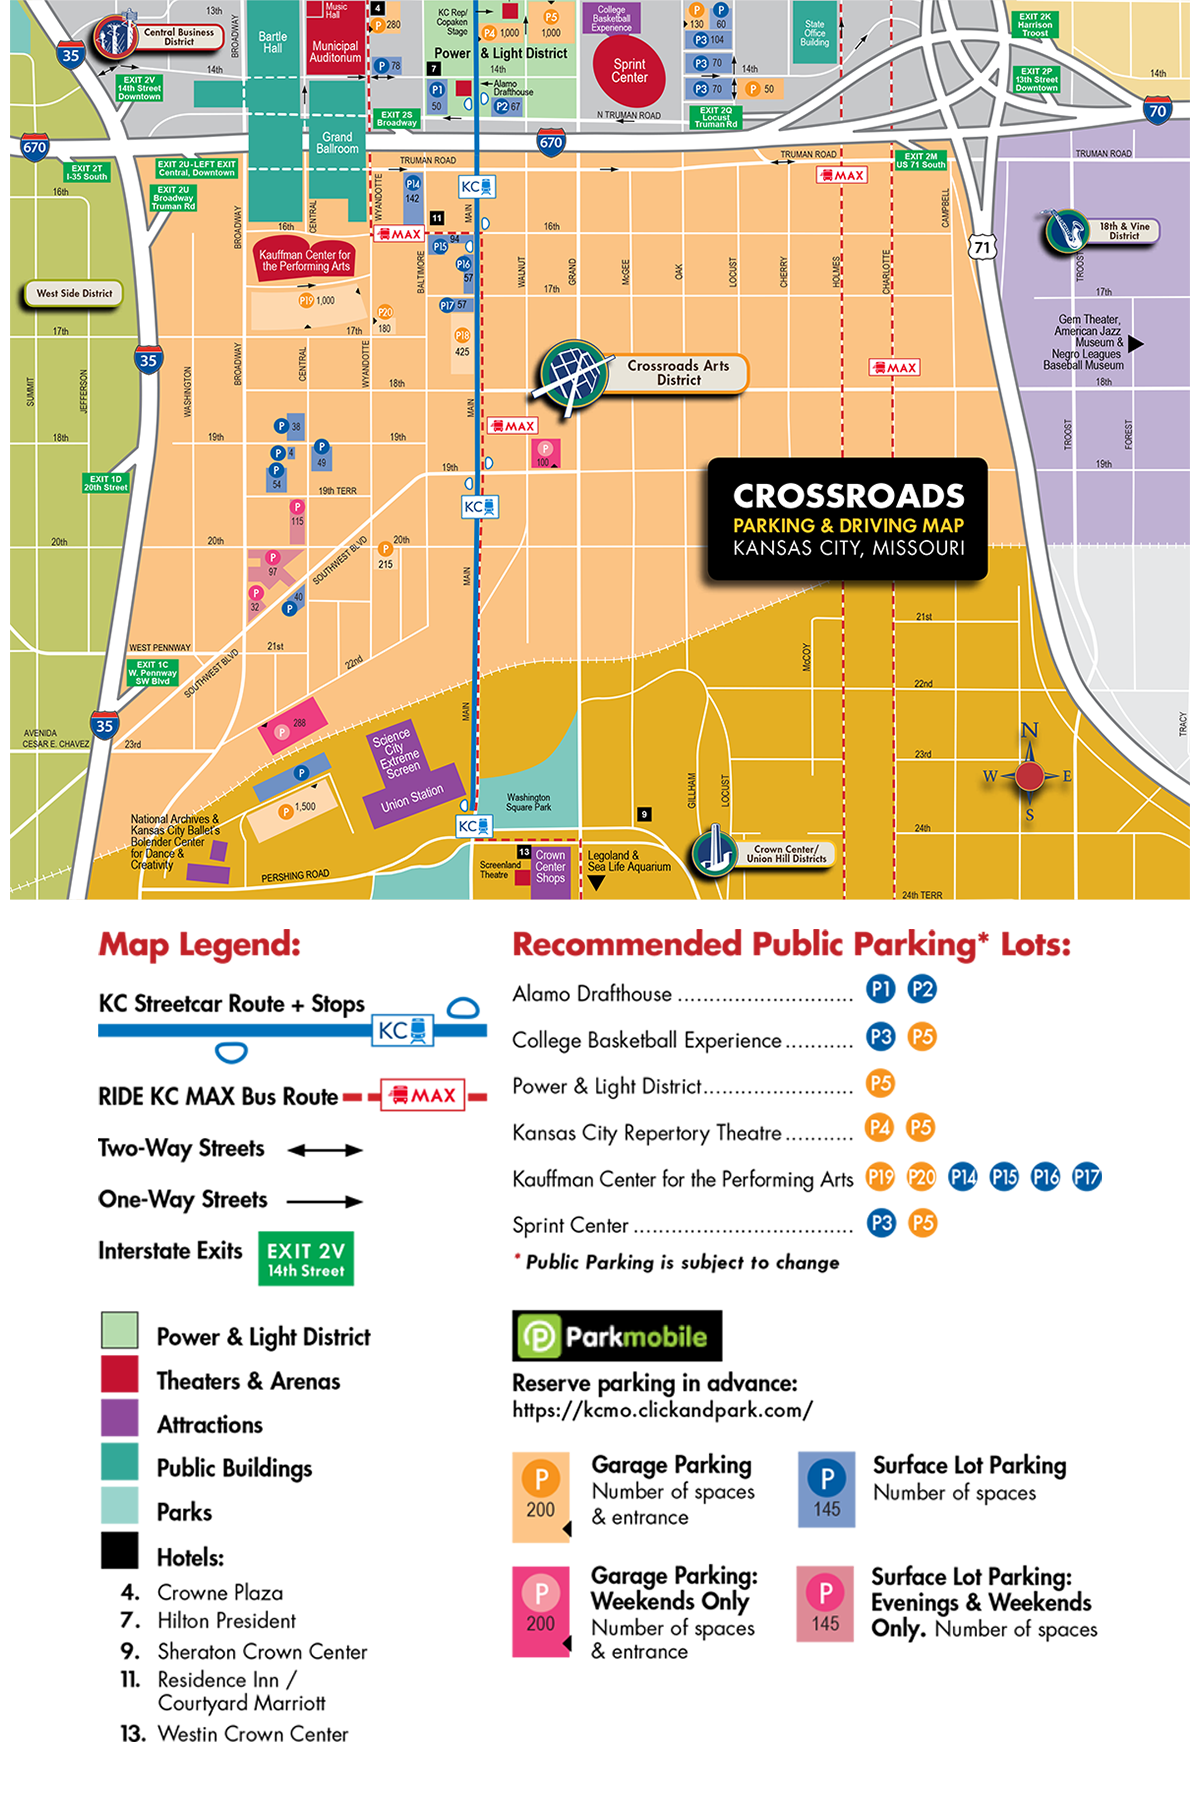 Crossroads district parking map visit kc crossroads kansas city parking map sciox Image collections